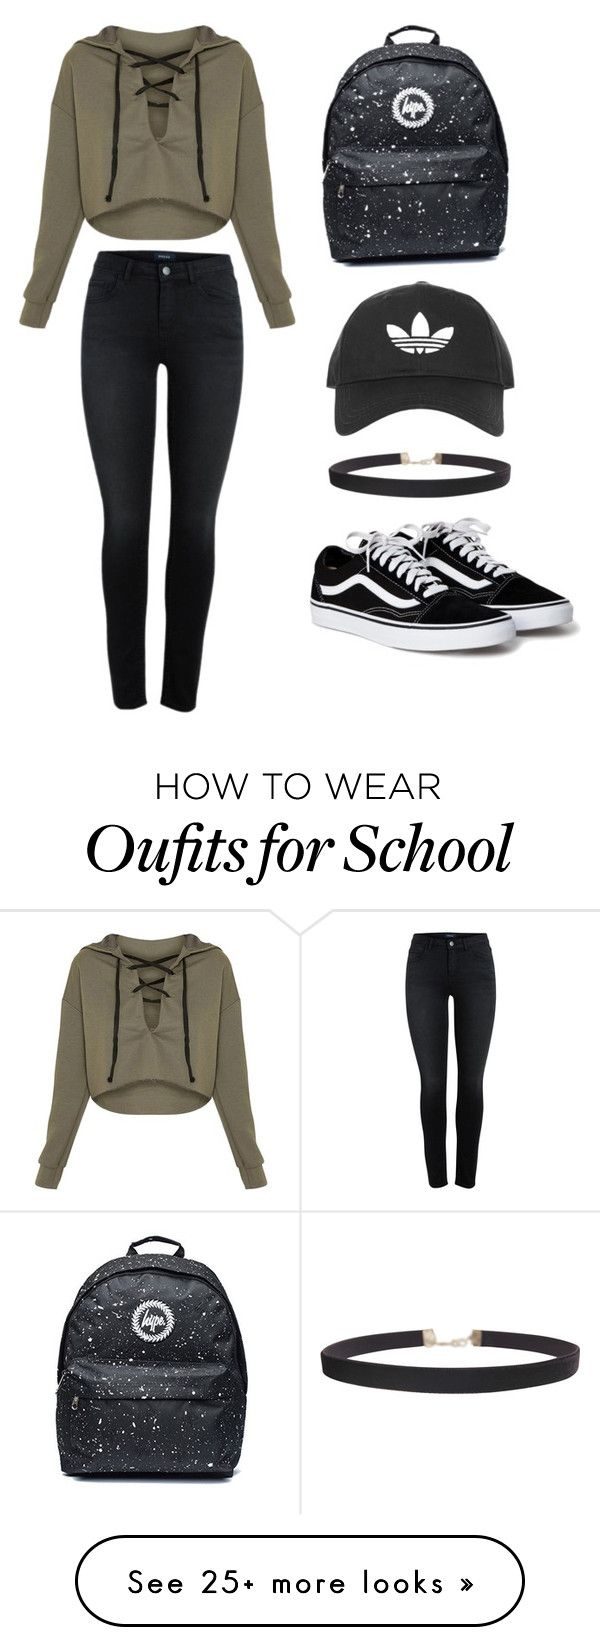 """Sin título #1"" by ktyfru on Polyvore featuring Topshop and Humble Chic"